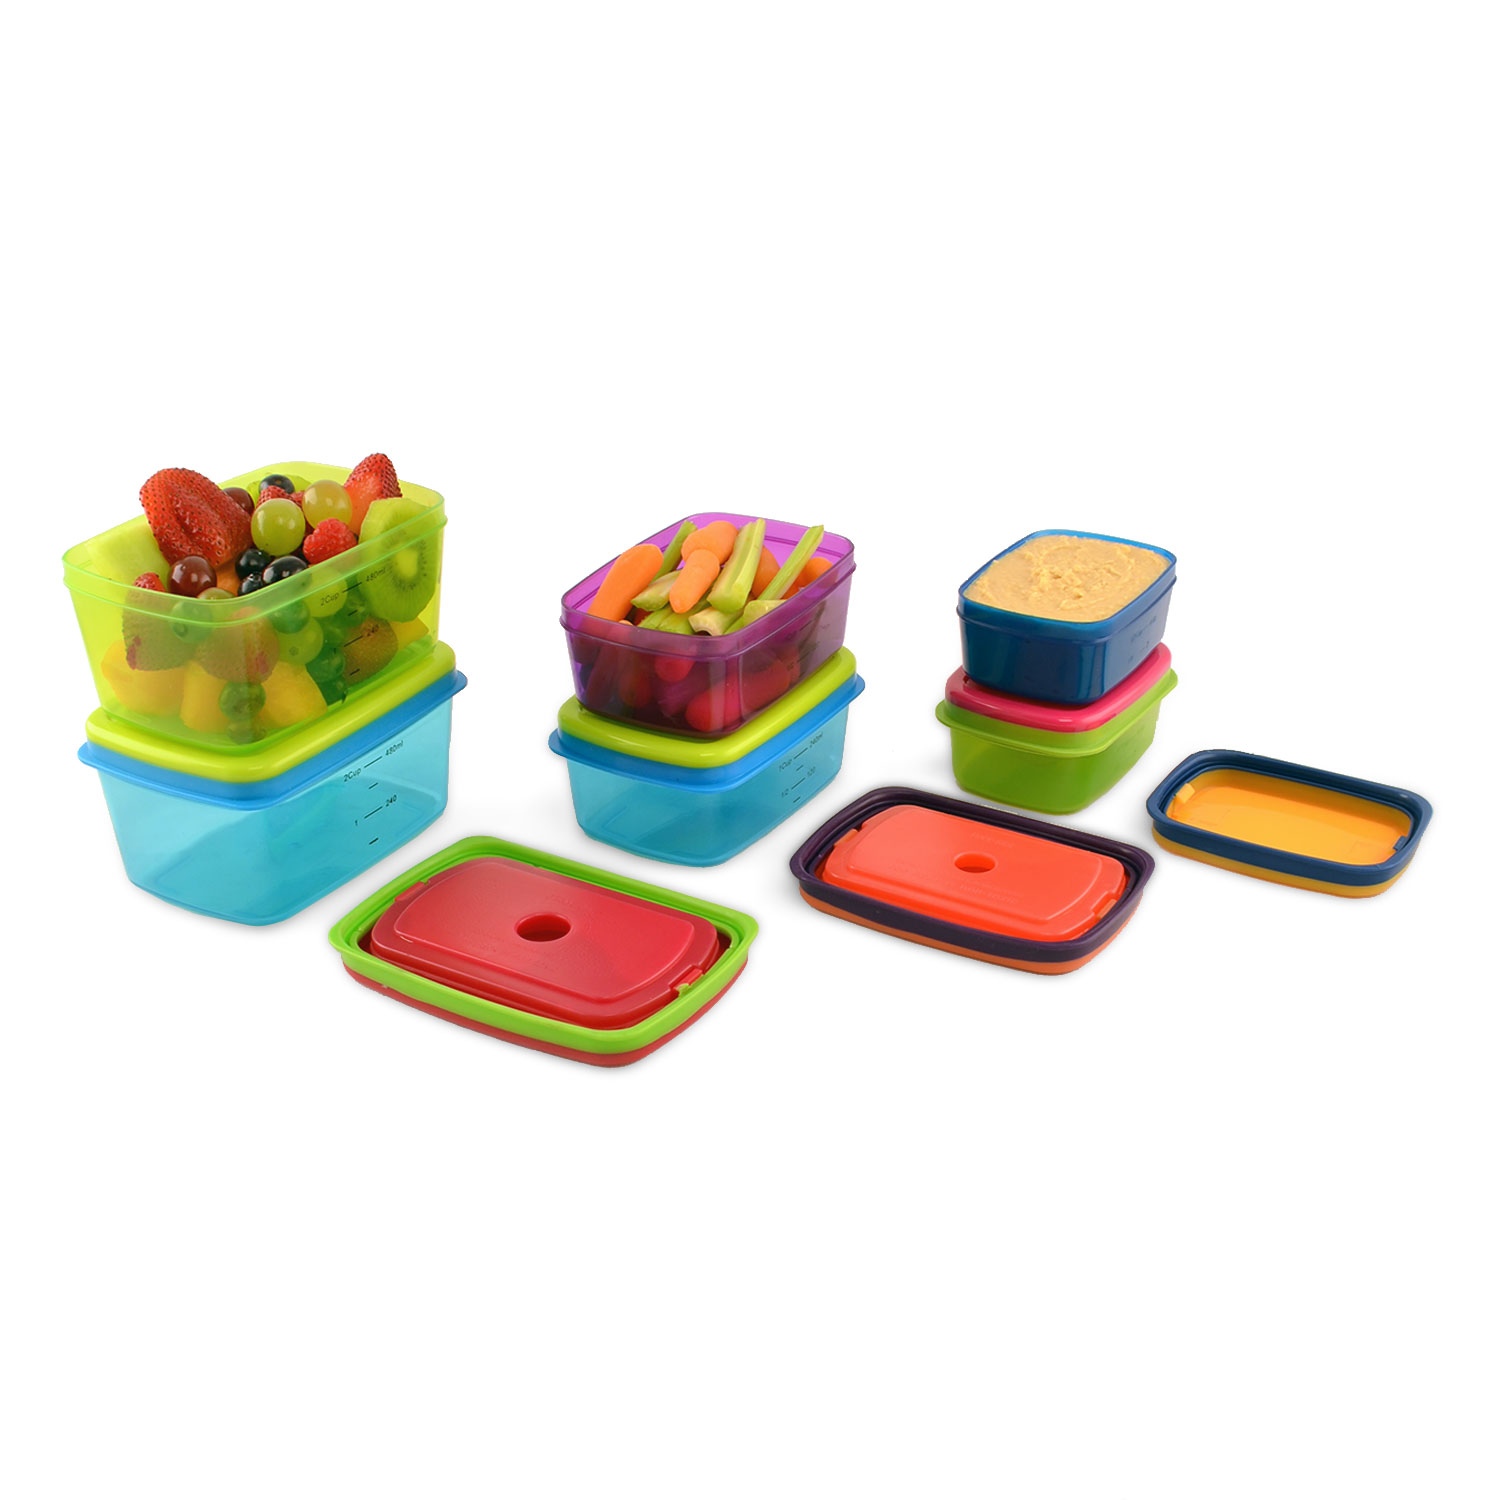 Fit & Fresh Kids' 14 Piece Leak-Proof Lunch Container Set 857KFF